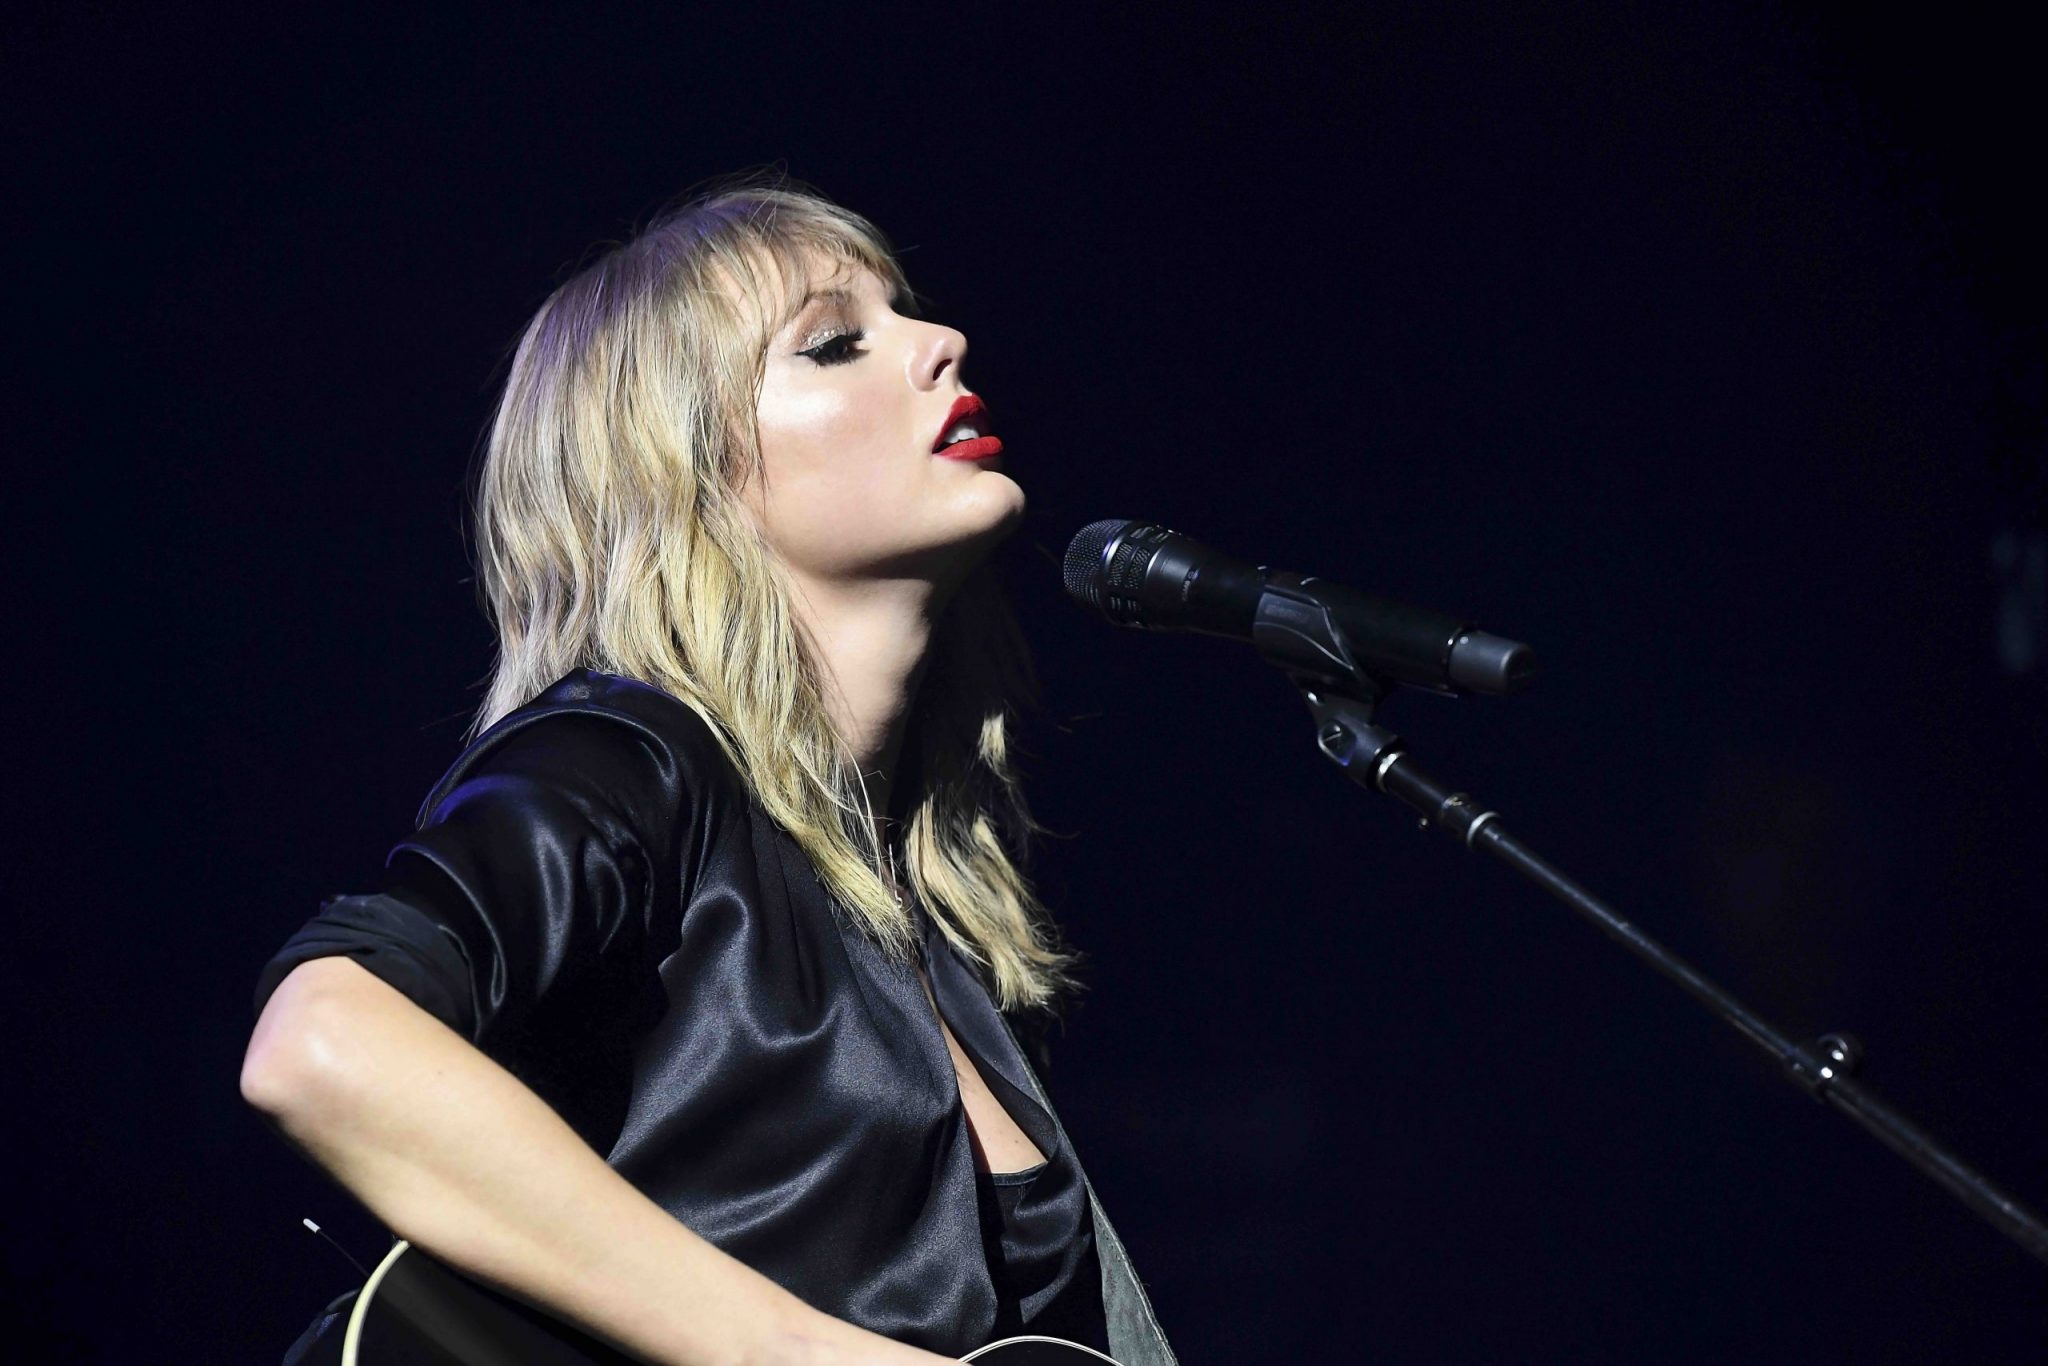 PARIS, FRANCE - SEPTEMBER 09:  Taylor Swift performs during her City of Lover Concert at L'Olympia on September 9, 2019 in Paris, France. (Photo by Dave Hogan for Taylor Swift)